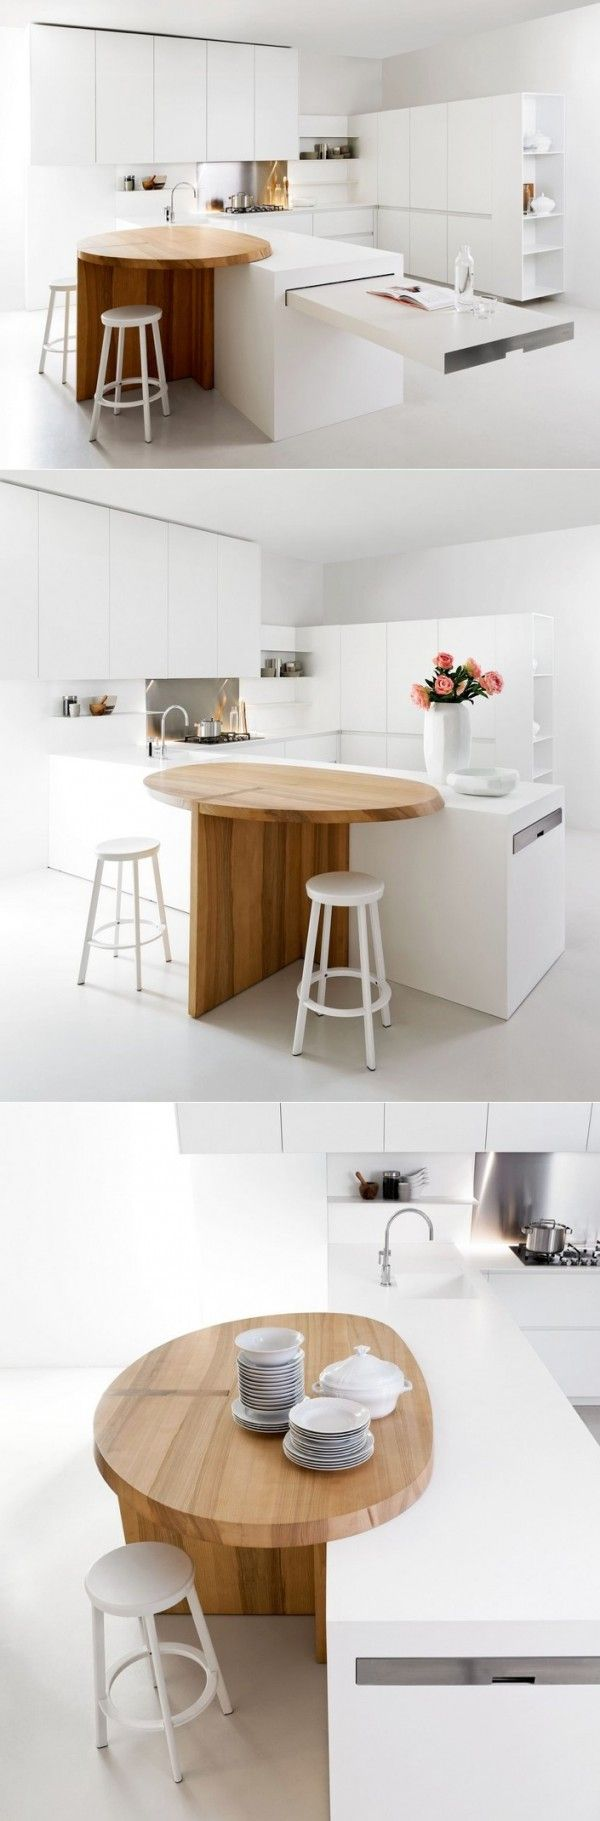 Kitchen:New Modern Kitchen Layout Styles And Interior Designs Colors  Backsplash Countertops Island Remodels Small House Space Ikea Extendable  Work Surface ...